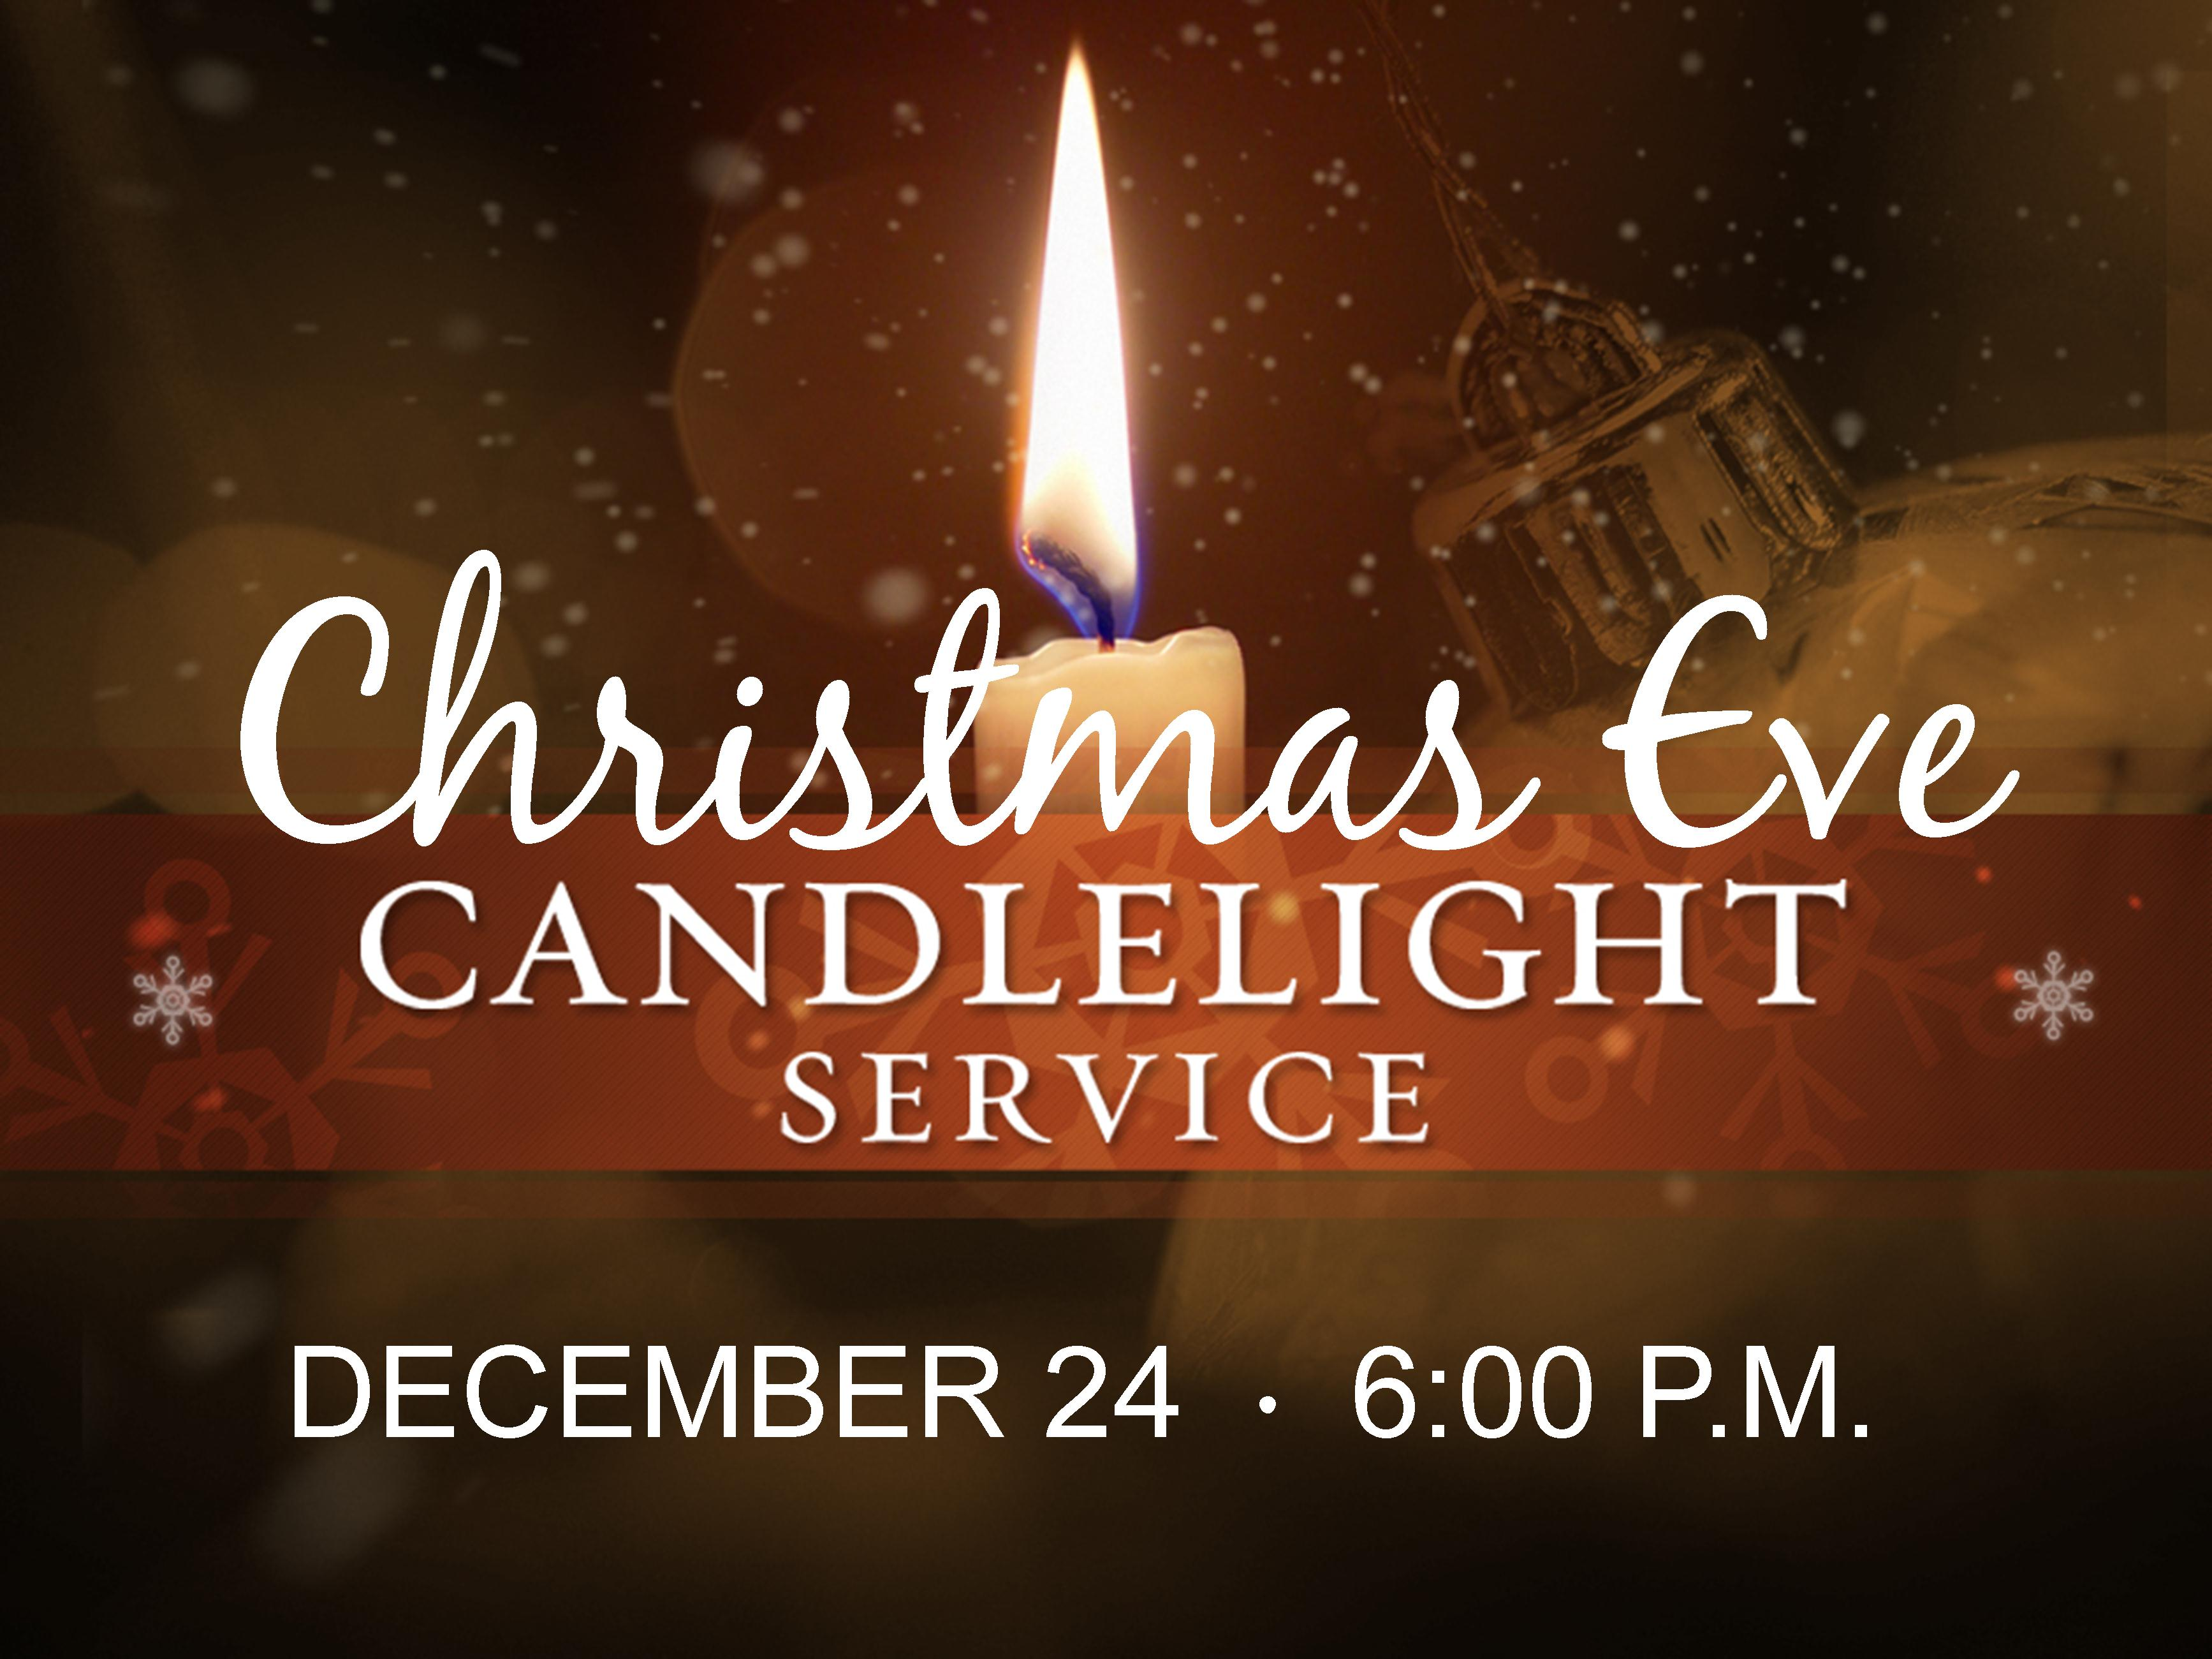 2021 Duncanville Christmas Eve Service Christmas Eve Candlelight Service 6pm The Brentwood Christian Church Blog